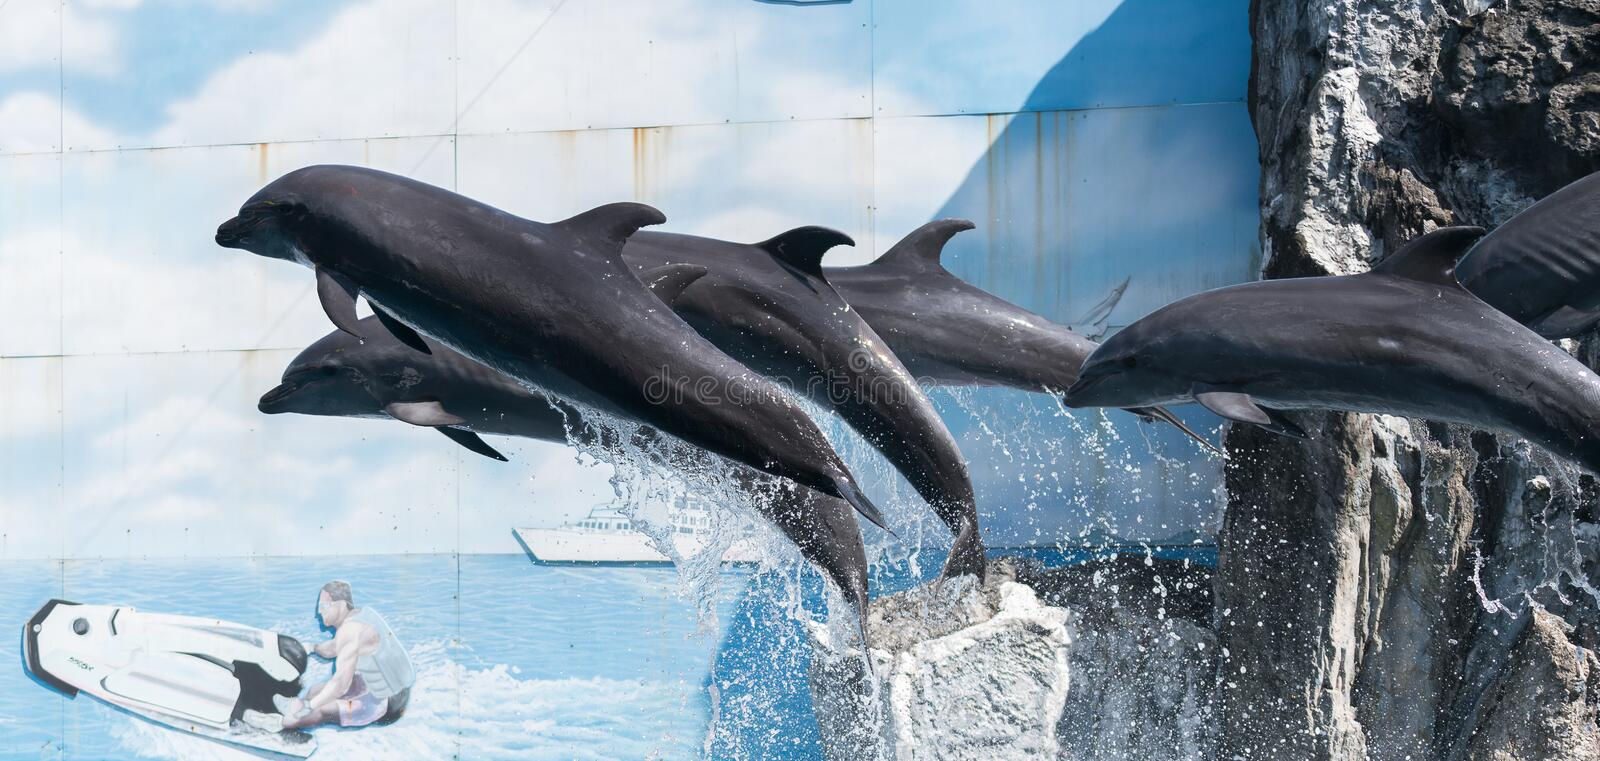 Dolphin. S are a widely distributed and diverse group of fully aquatic marine mammals. They are an informal grouping within the order Cetacea, excluding whales stock image